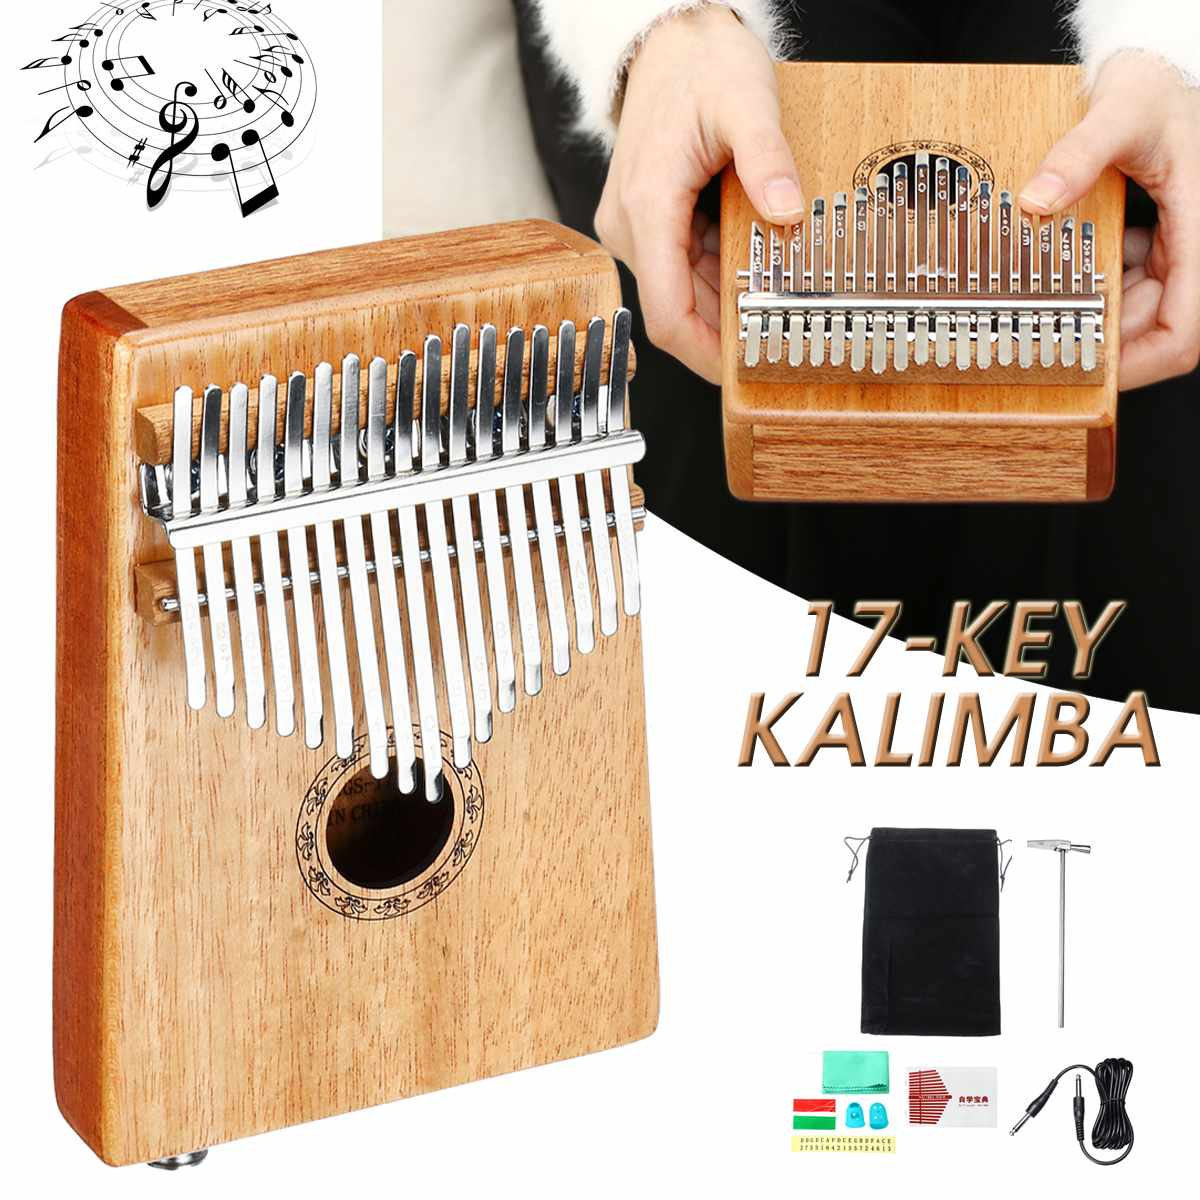 17 Key EQ Kalimba Thumb Piano w/Tuner Hammer African Traditional Electric Pickup Keyboard Body Musical Instrument Portable w/Bag